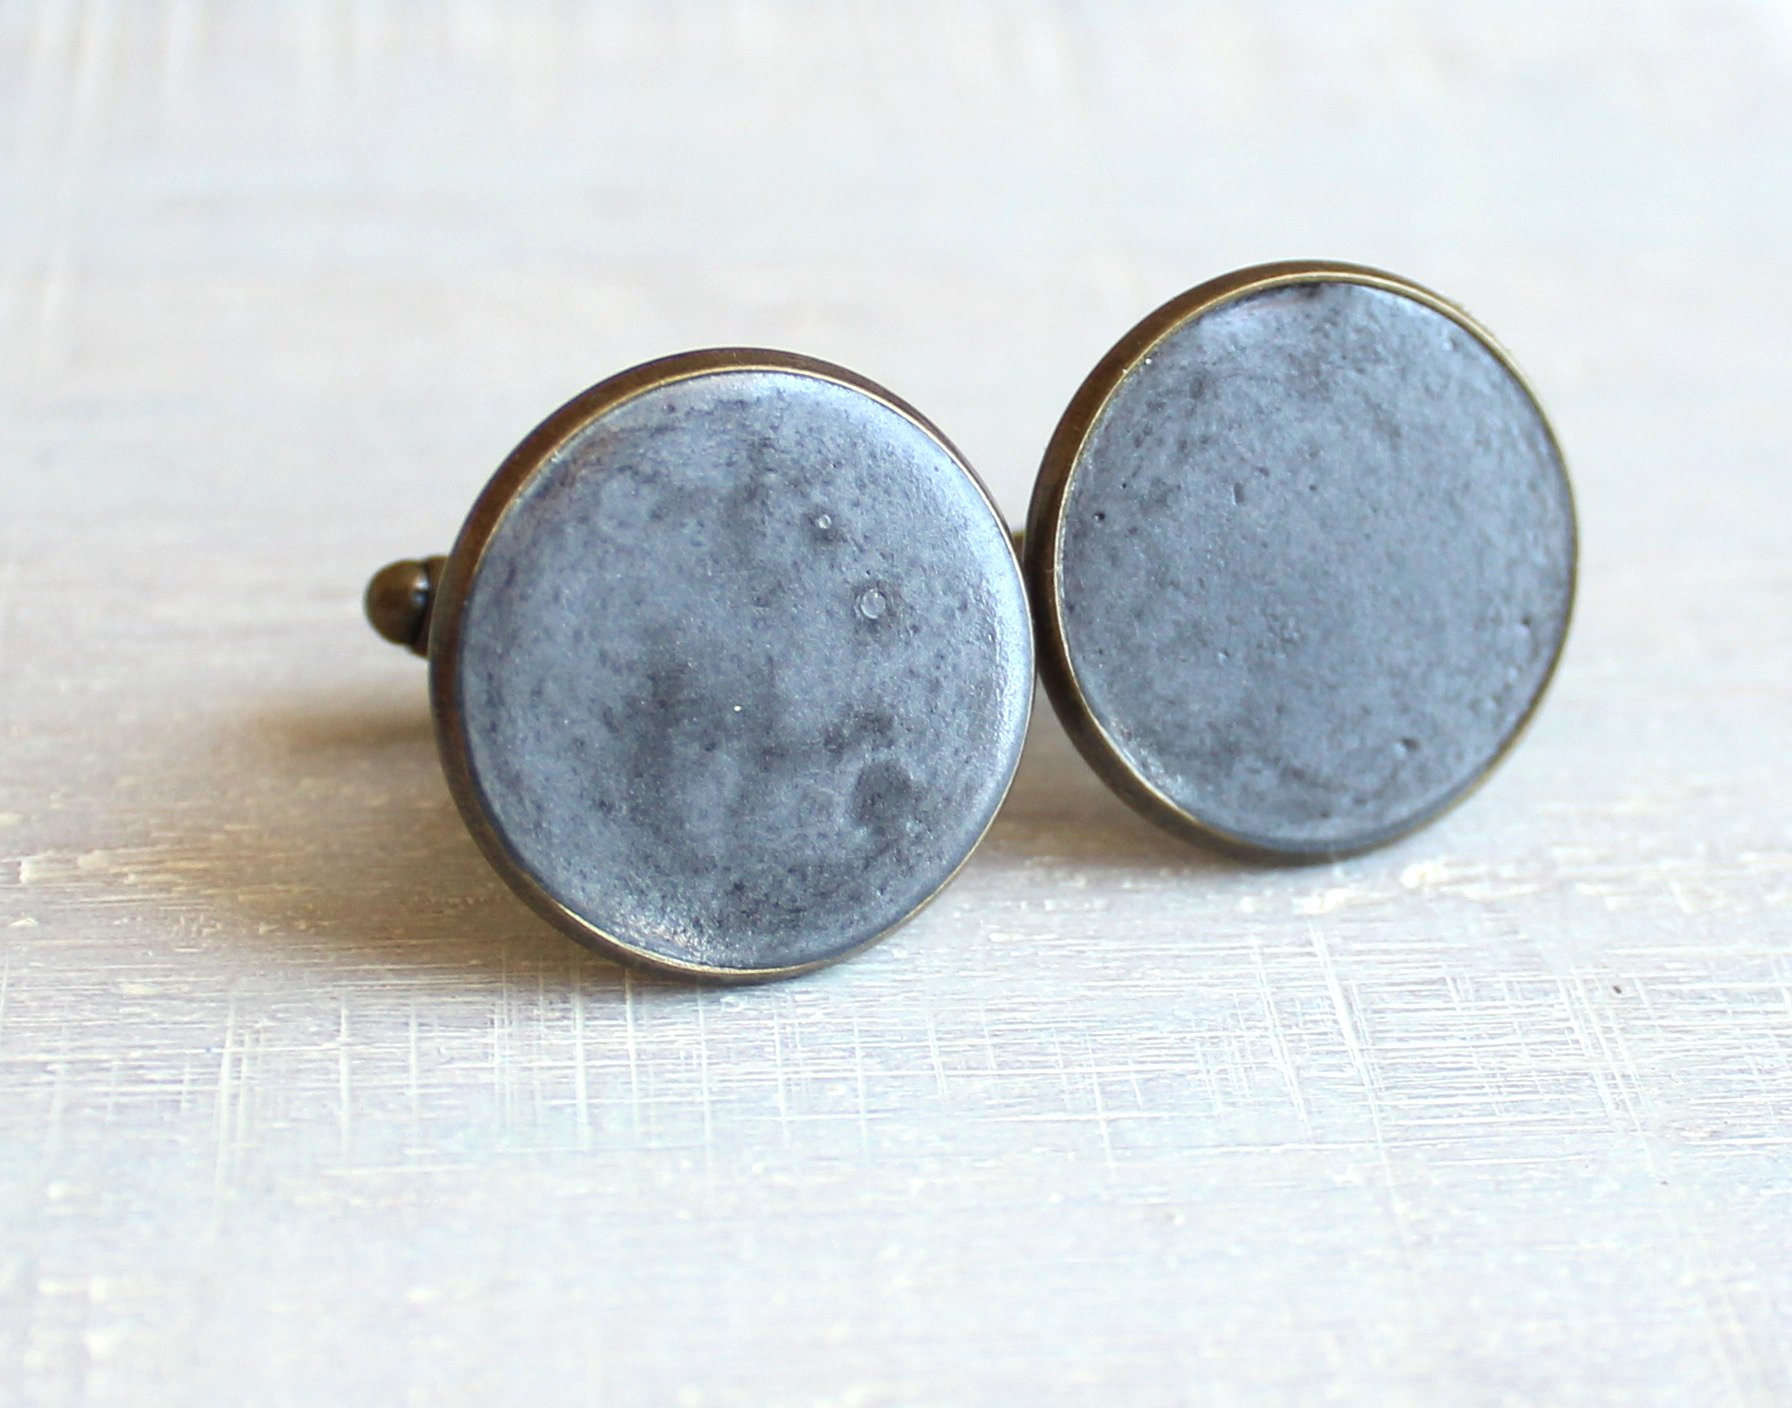 Charcoal color concrete and brass cufflinks